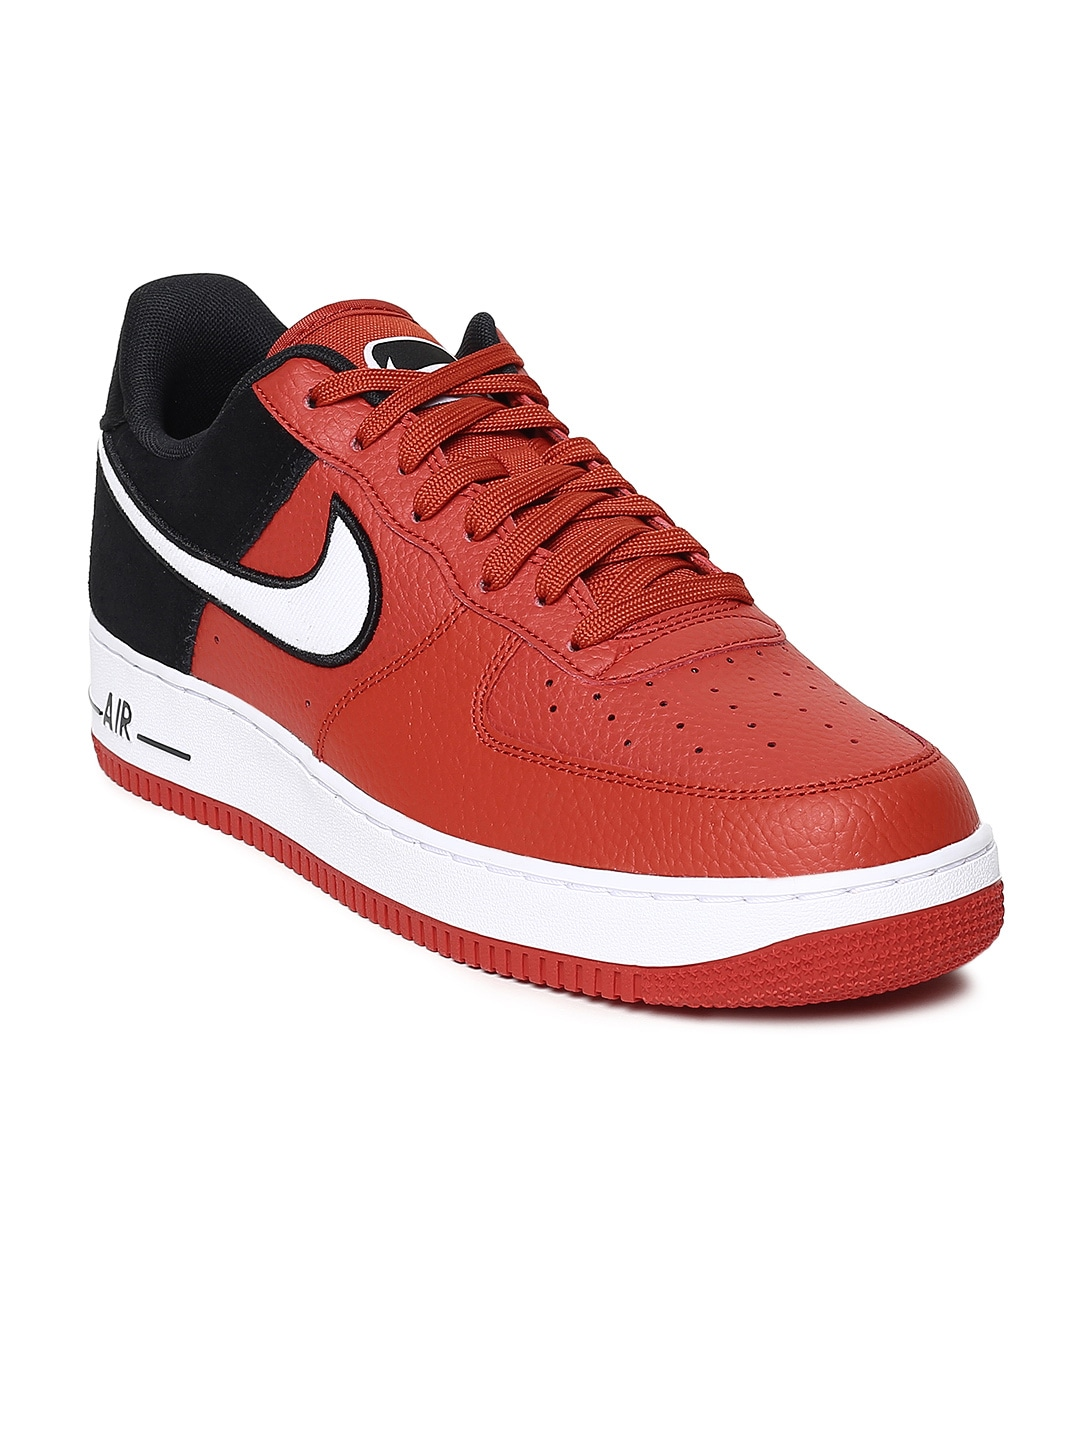 promo code c04df bba60 Nike Men Shoes 2 Casual - Buy Nike Men Shoes 2 Casual online in India